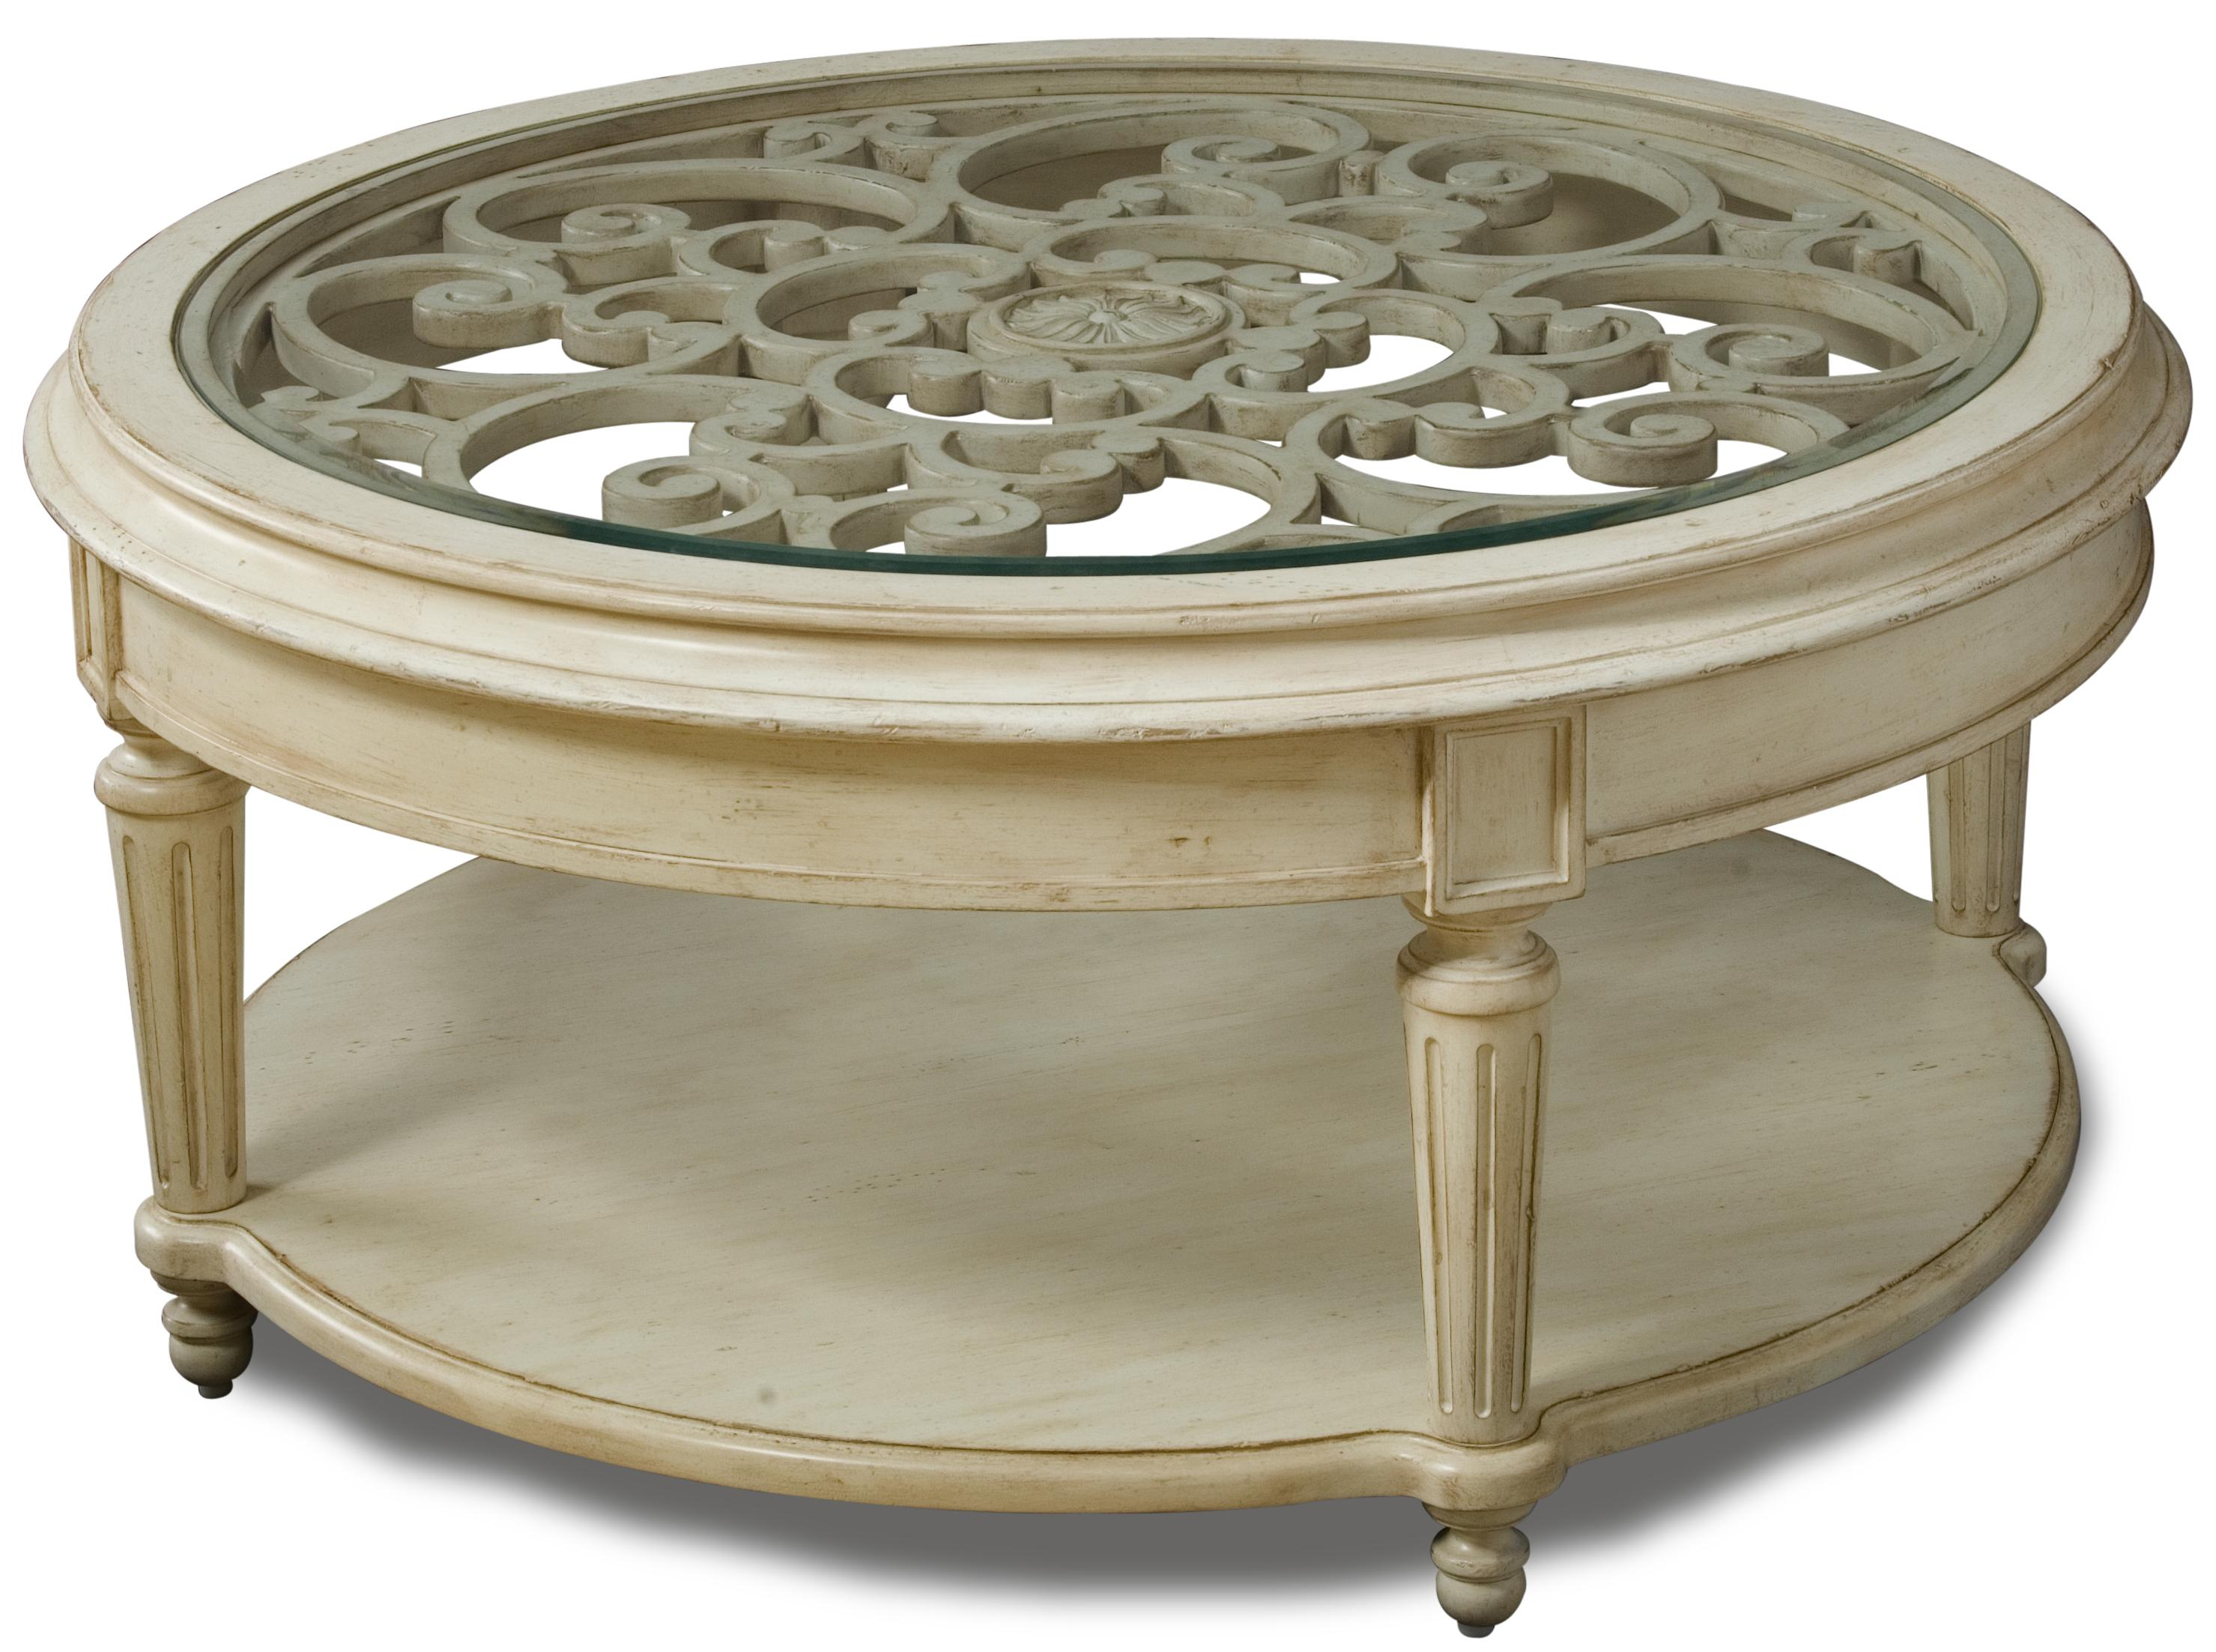 Belfort Signature Sonnet Round Cocktail Table - Item Number: 76302